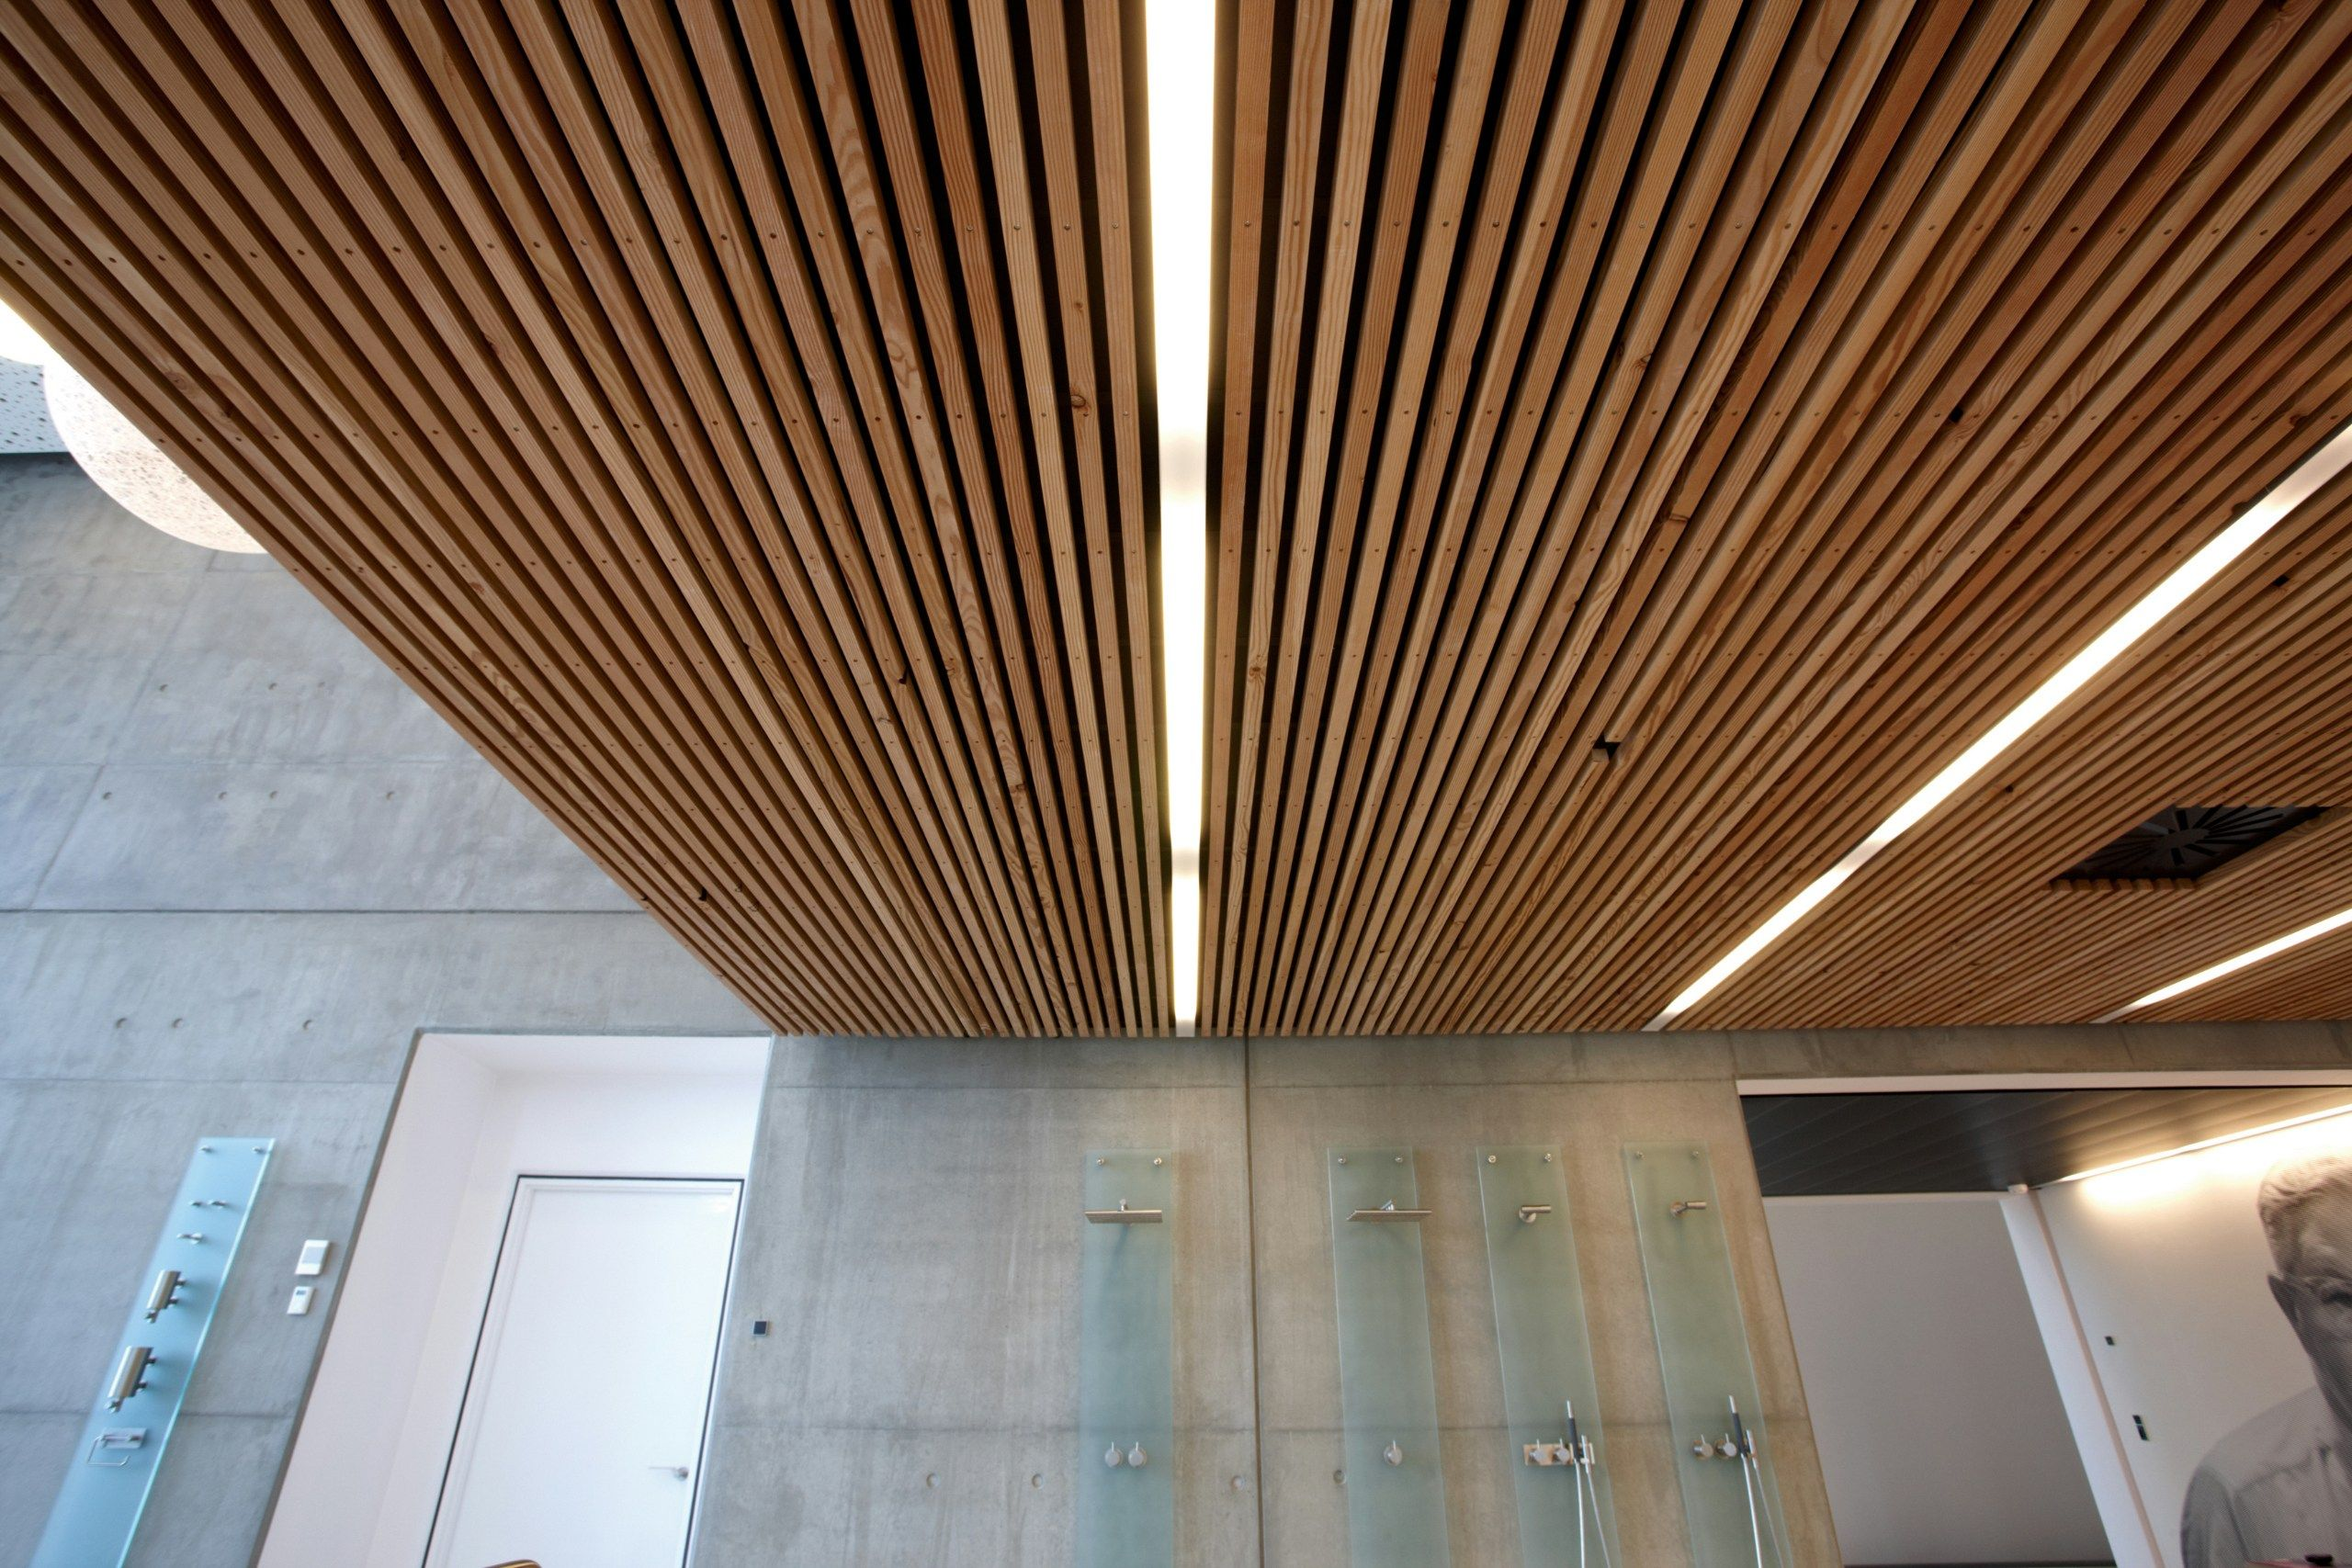 Faux plafond effet bois dinesen ceiling by dinesen ceiling tiles with wood